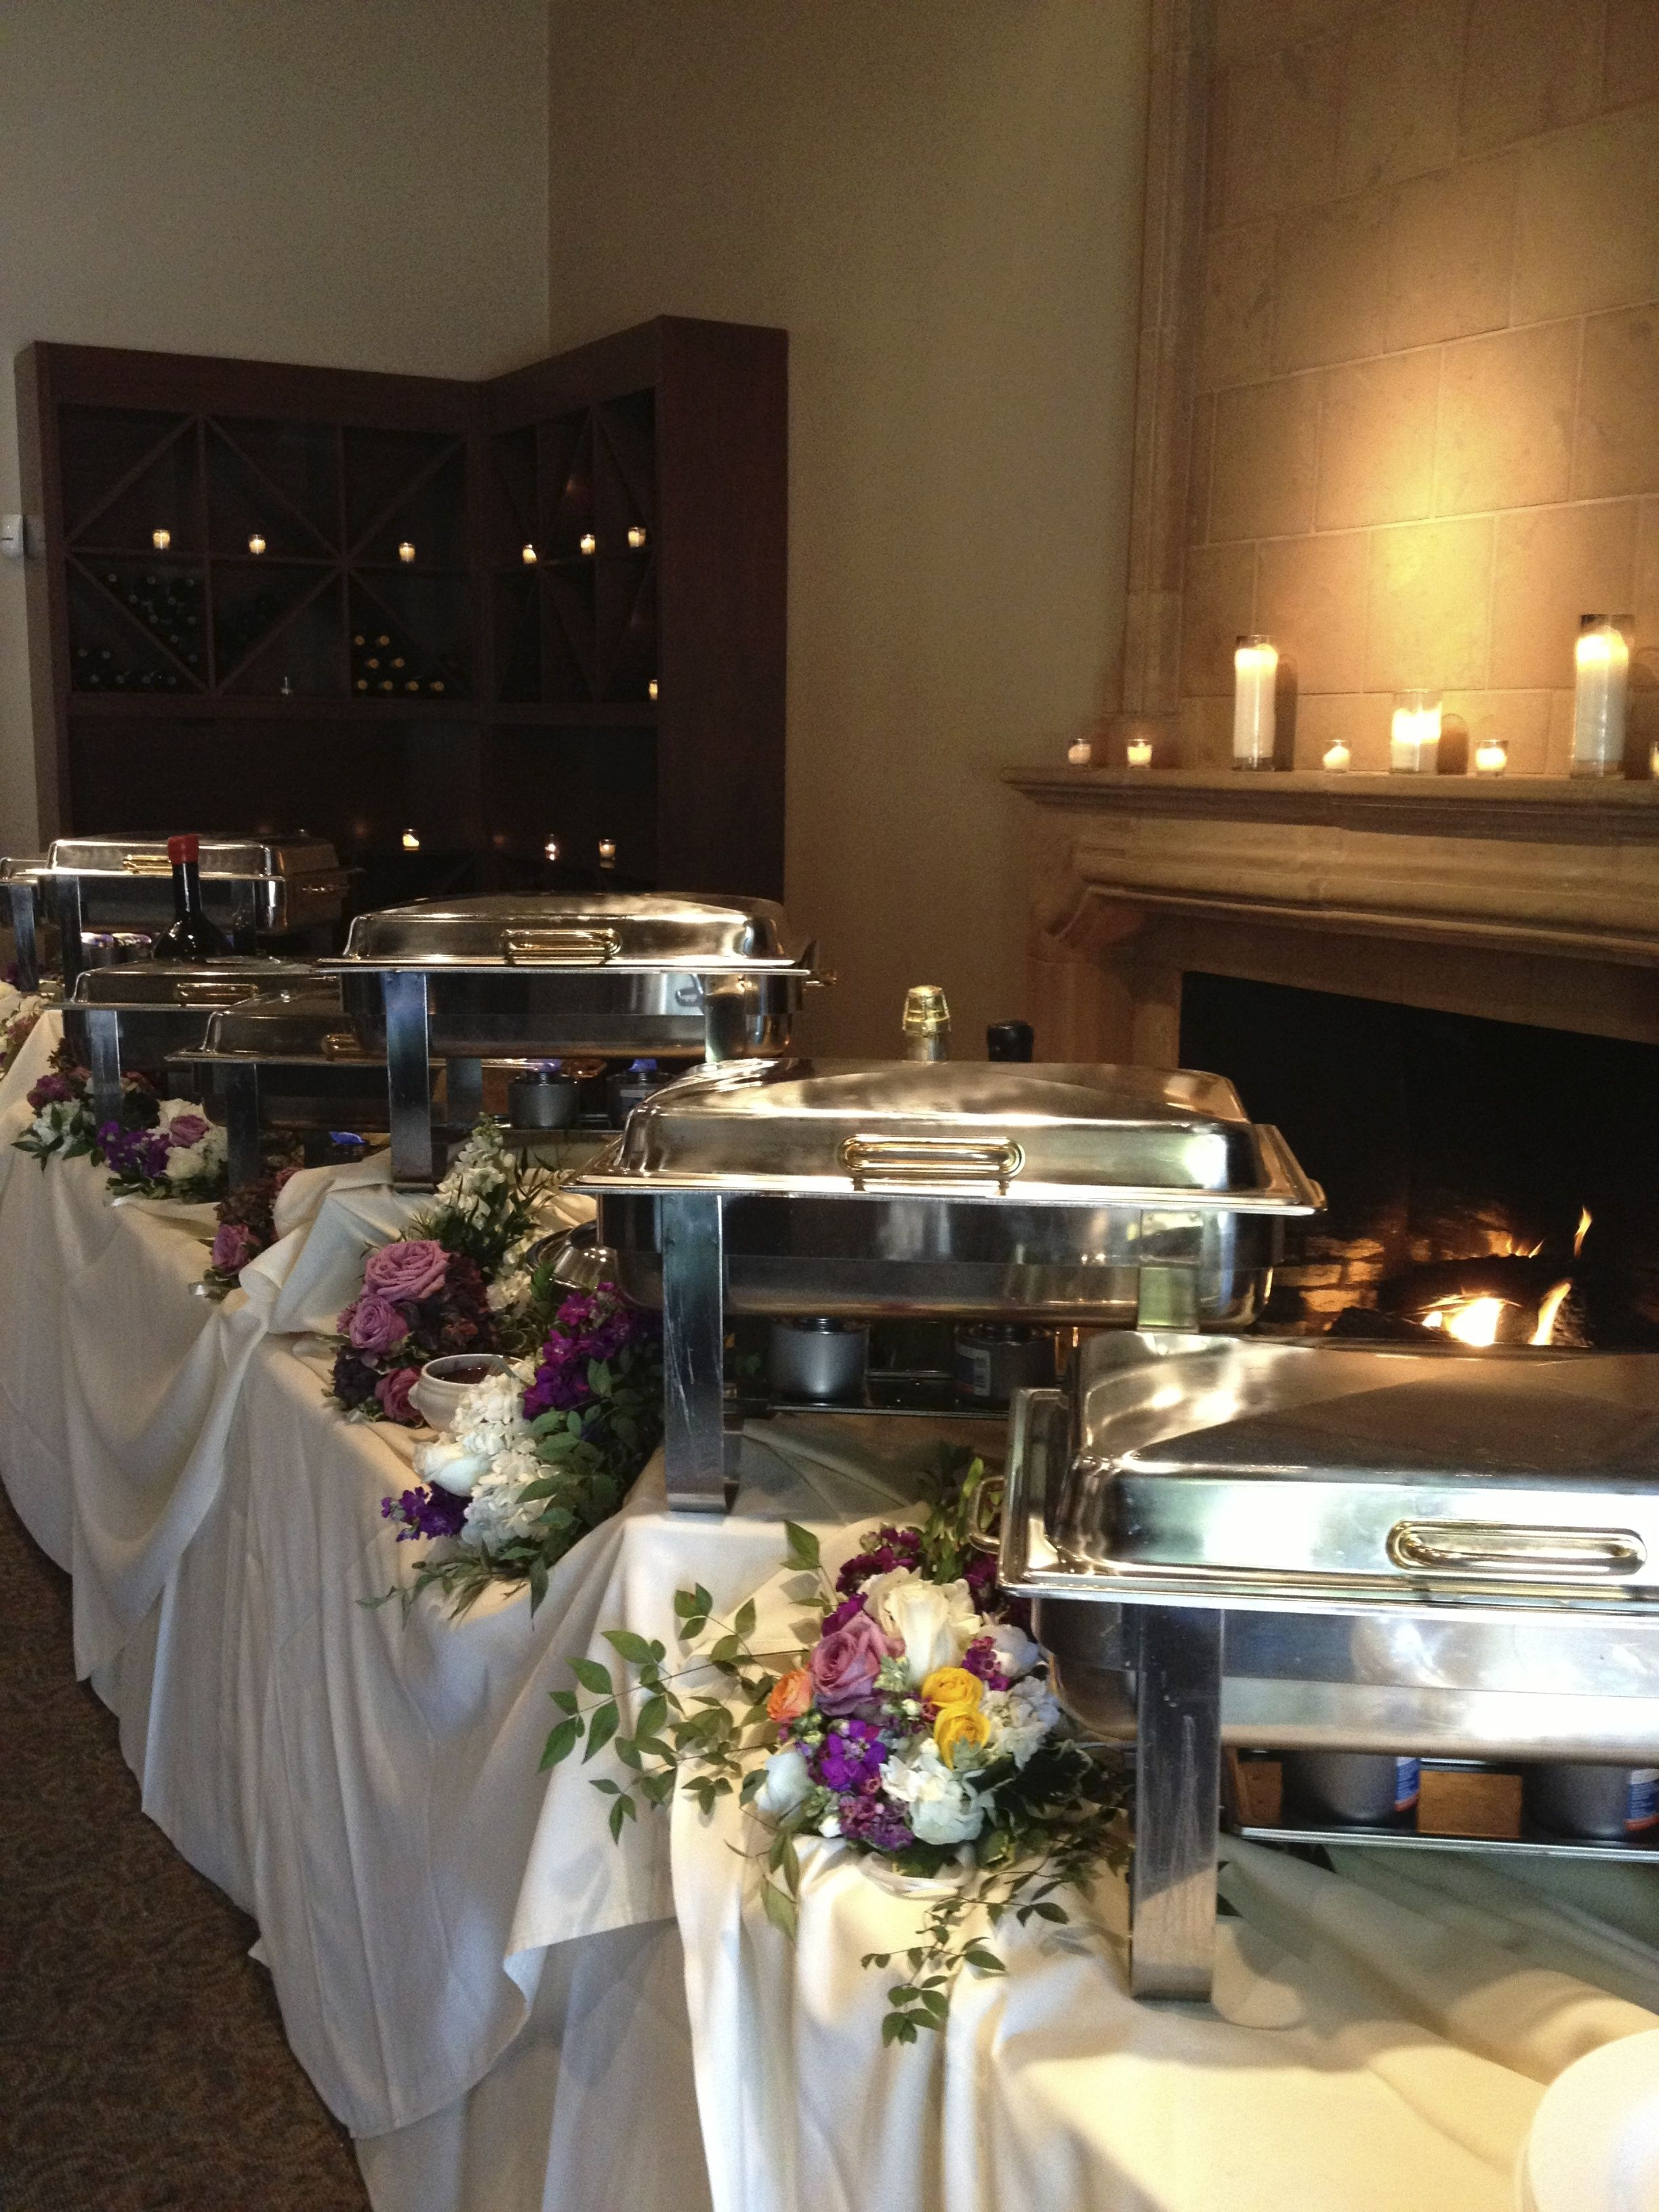 Catering Companies In Utah Why Choosing Rockwell Catering Can Make - Catering table setting